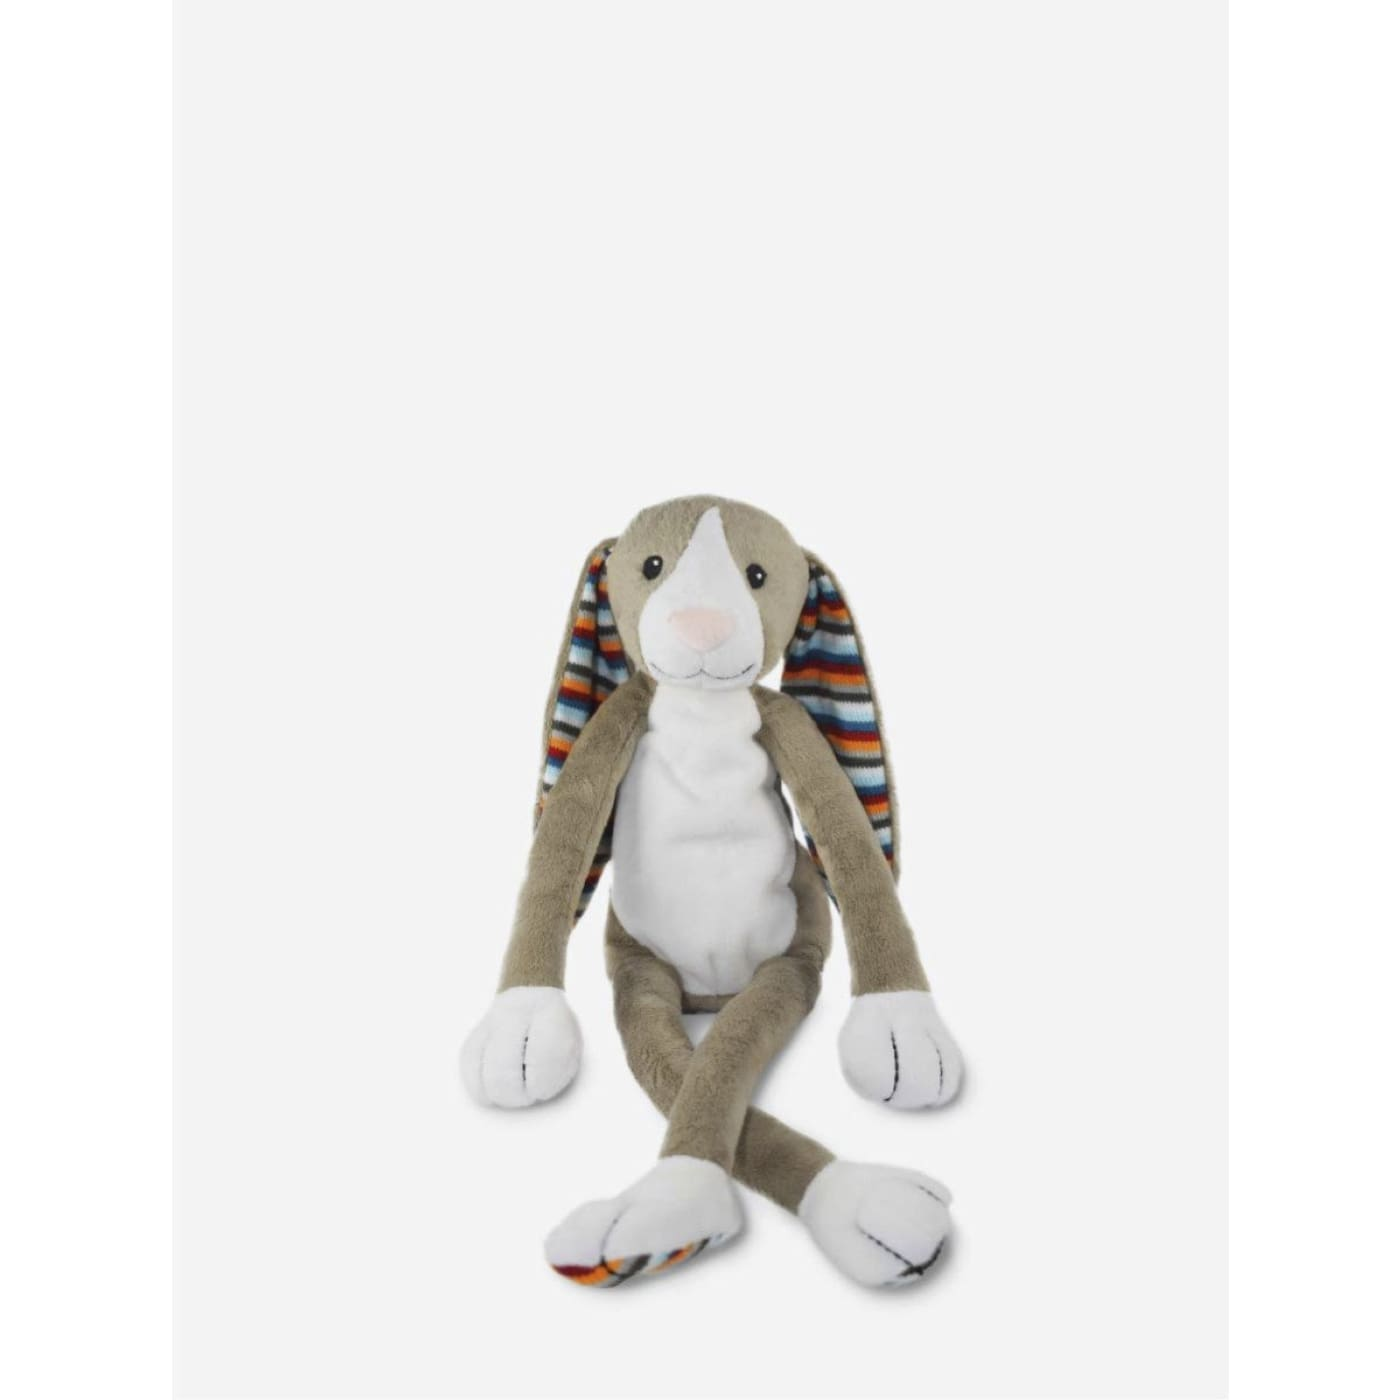 Zazu Soft Toy Nightlight with Melodies - Bo - Bunny - NURSERY & BEDTIME - SLEEP AIDS/NIGHT LIGHTS